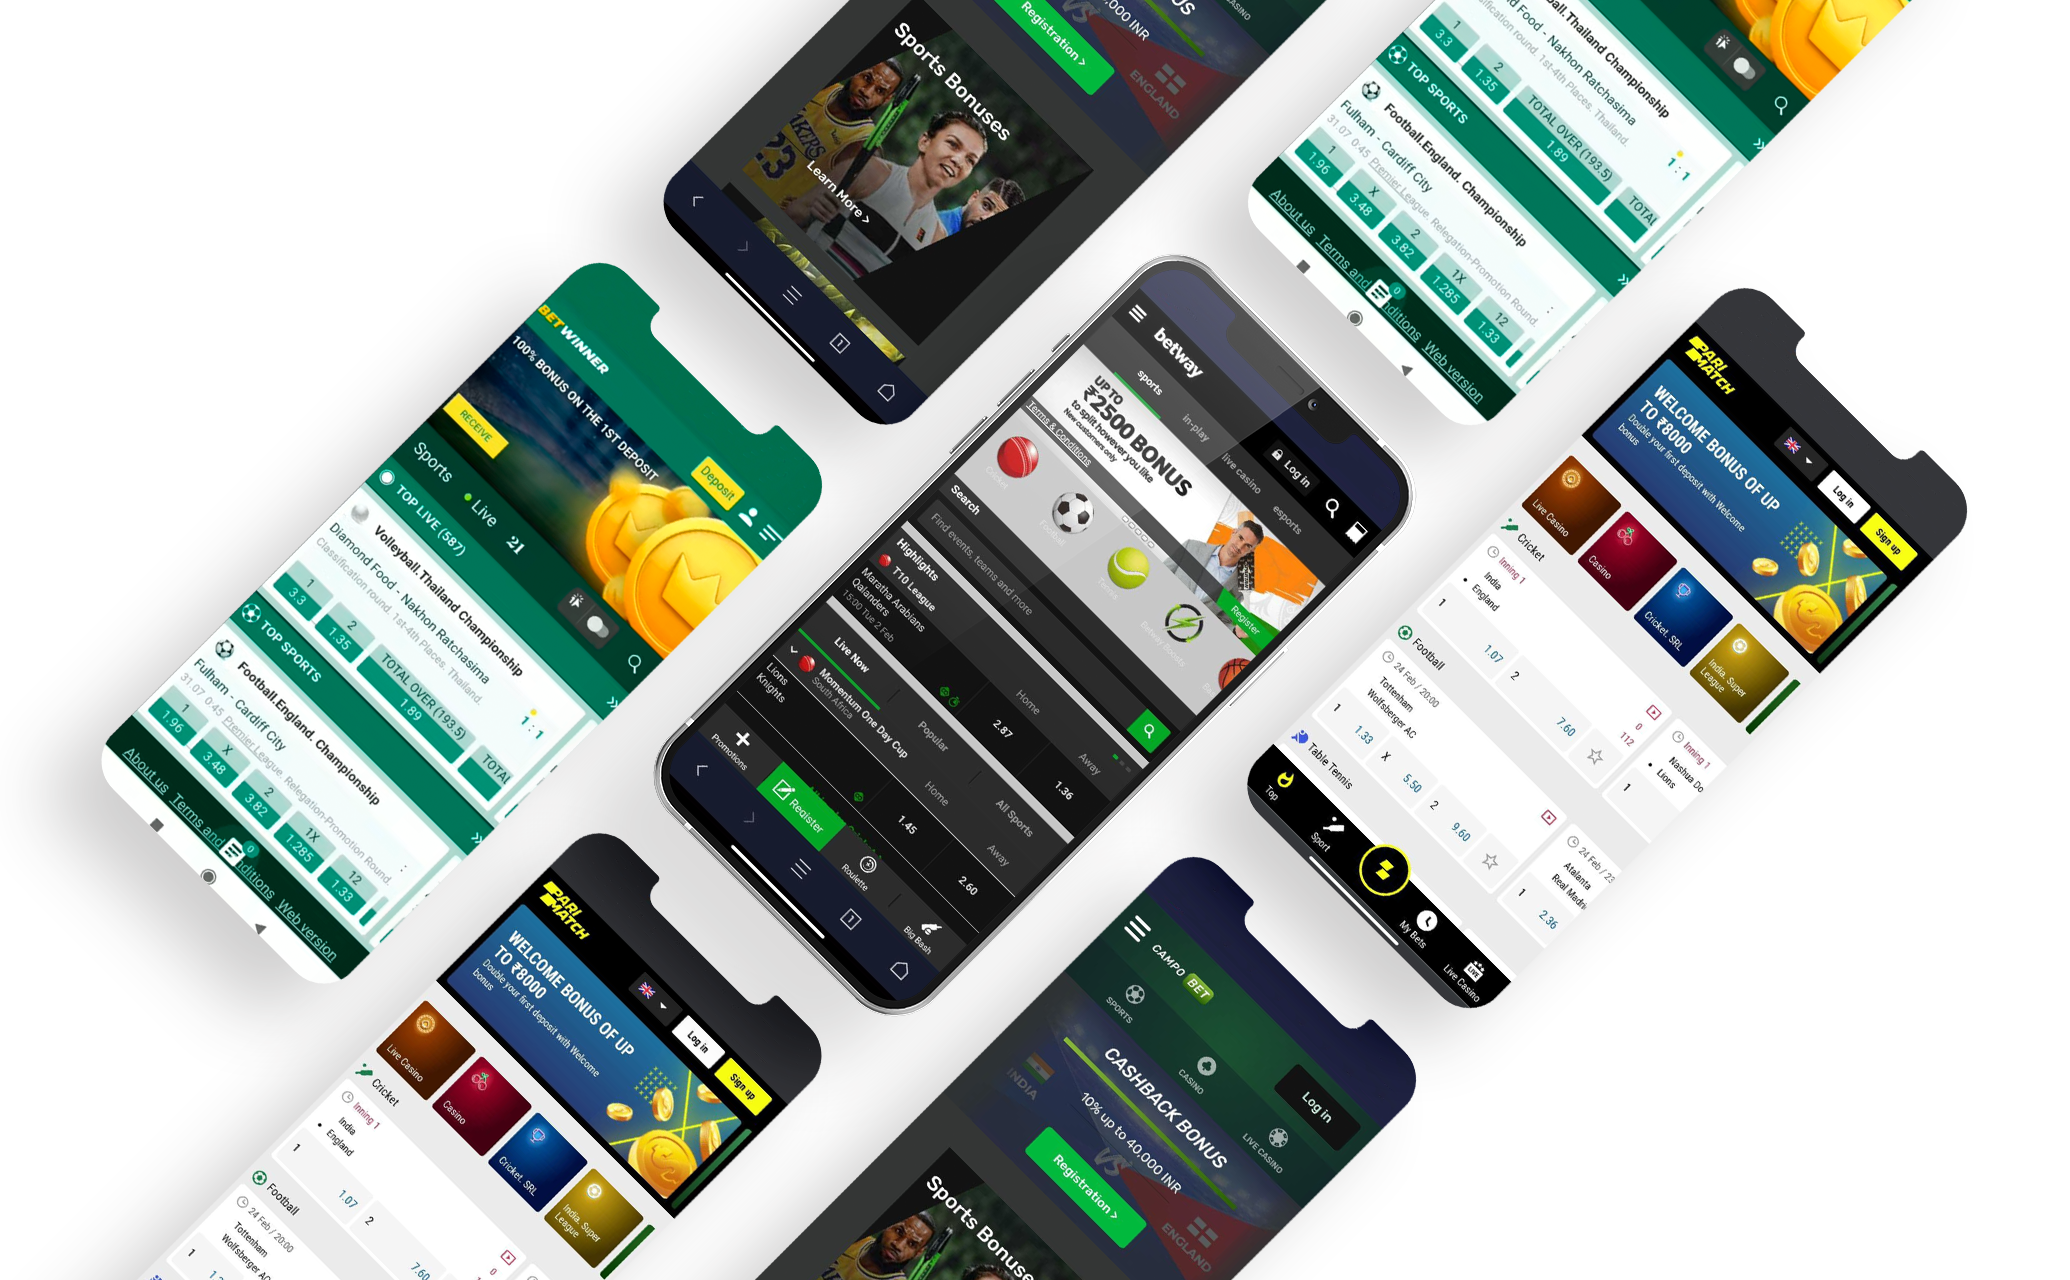 Choose the best app for online cricket betting from the list of the best sites according to experts.